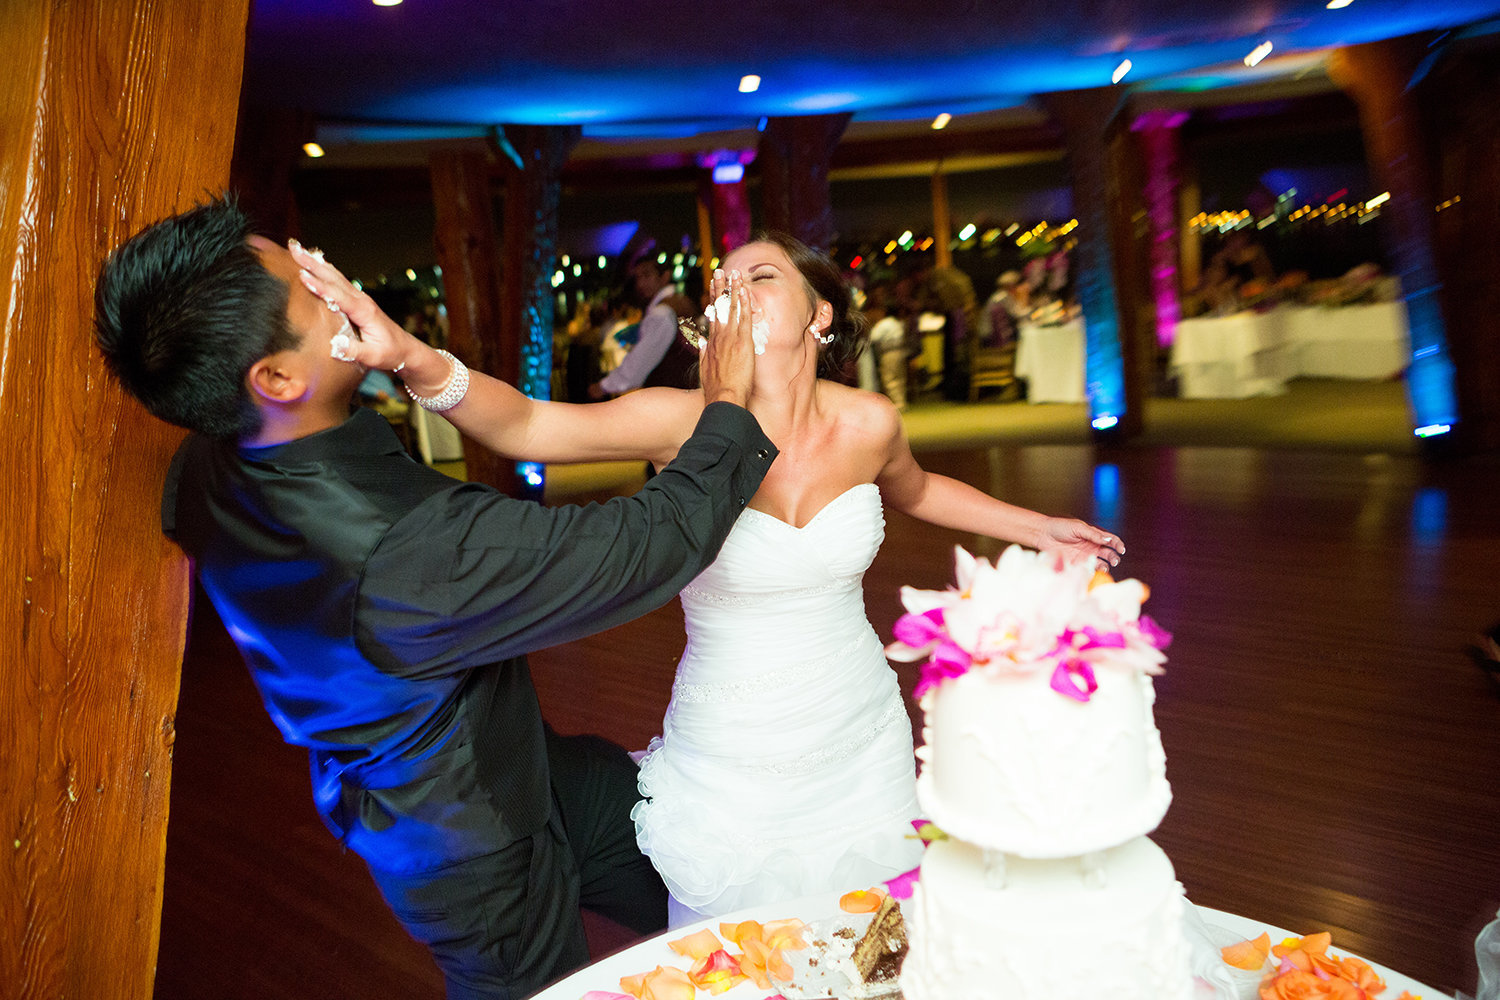 Bali Hai wedding photos fun cake smash